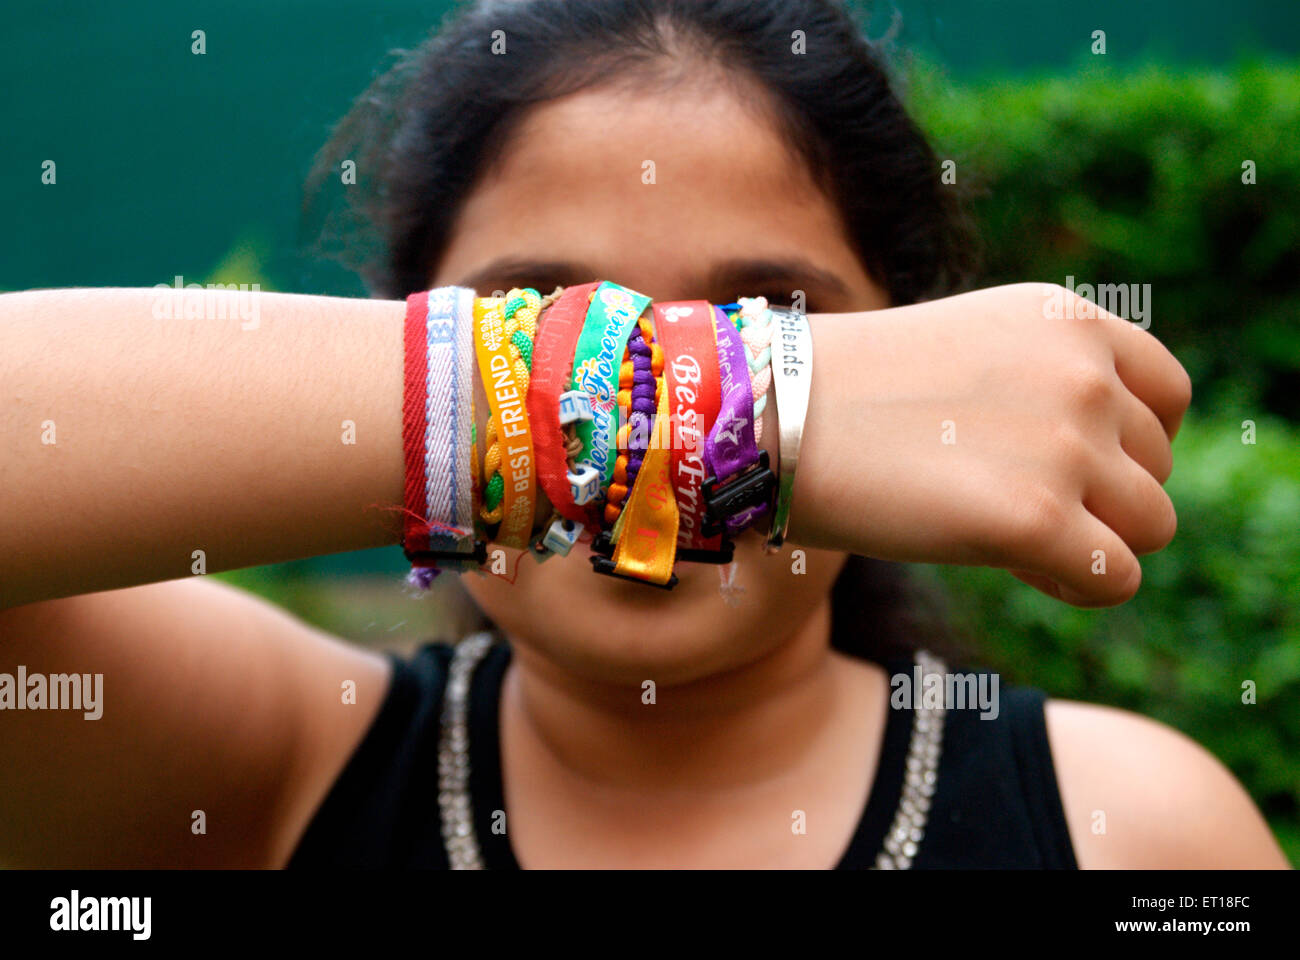 Friendship Belt Tie on Friendship Day MR#364 - Stock Image